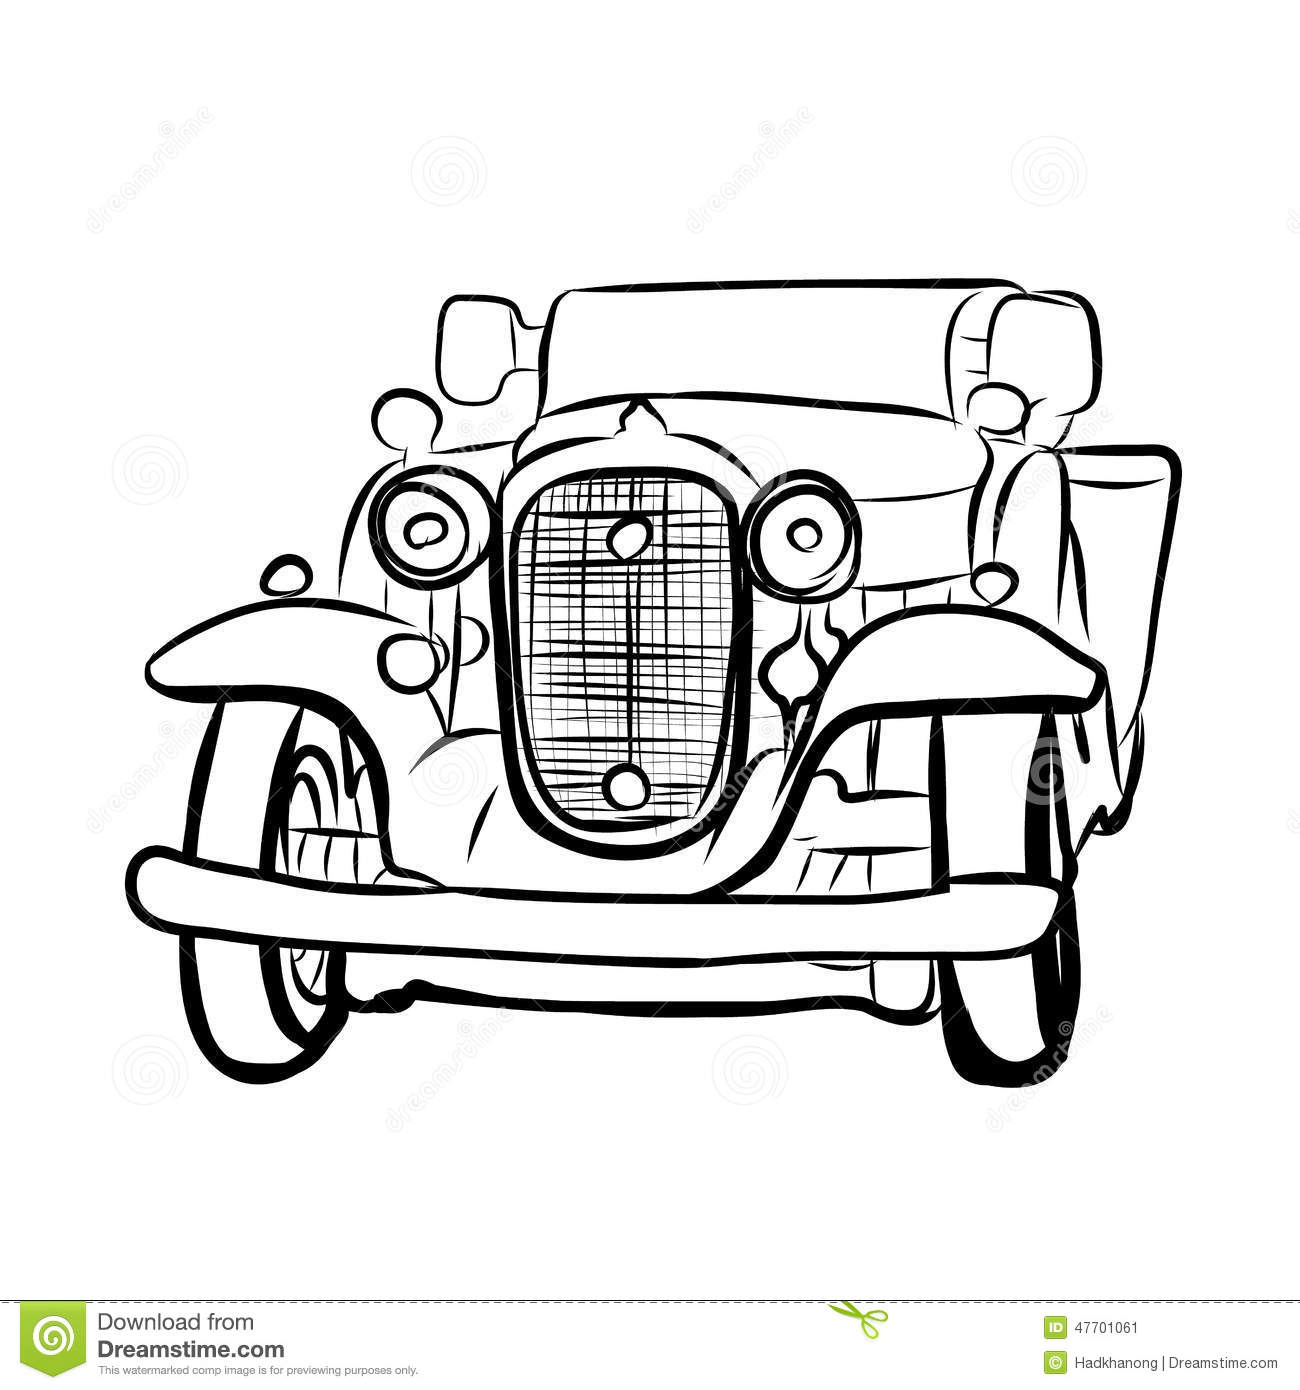 Charming drawings of old cars photos electrical and wiring diagram